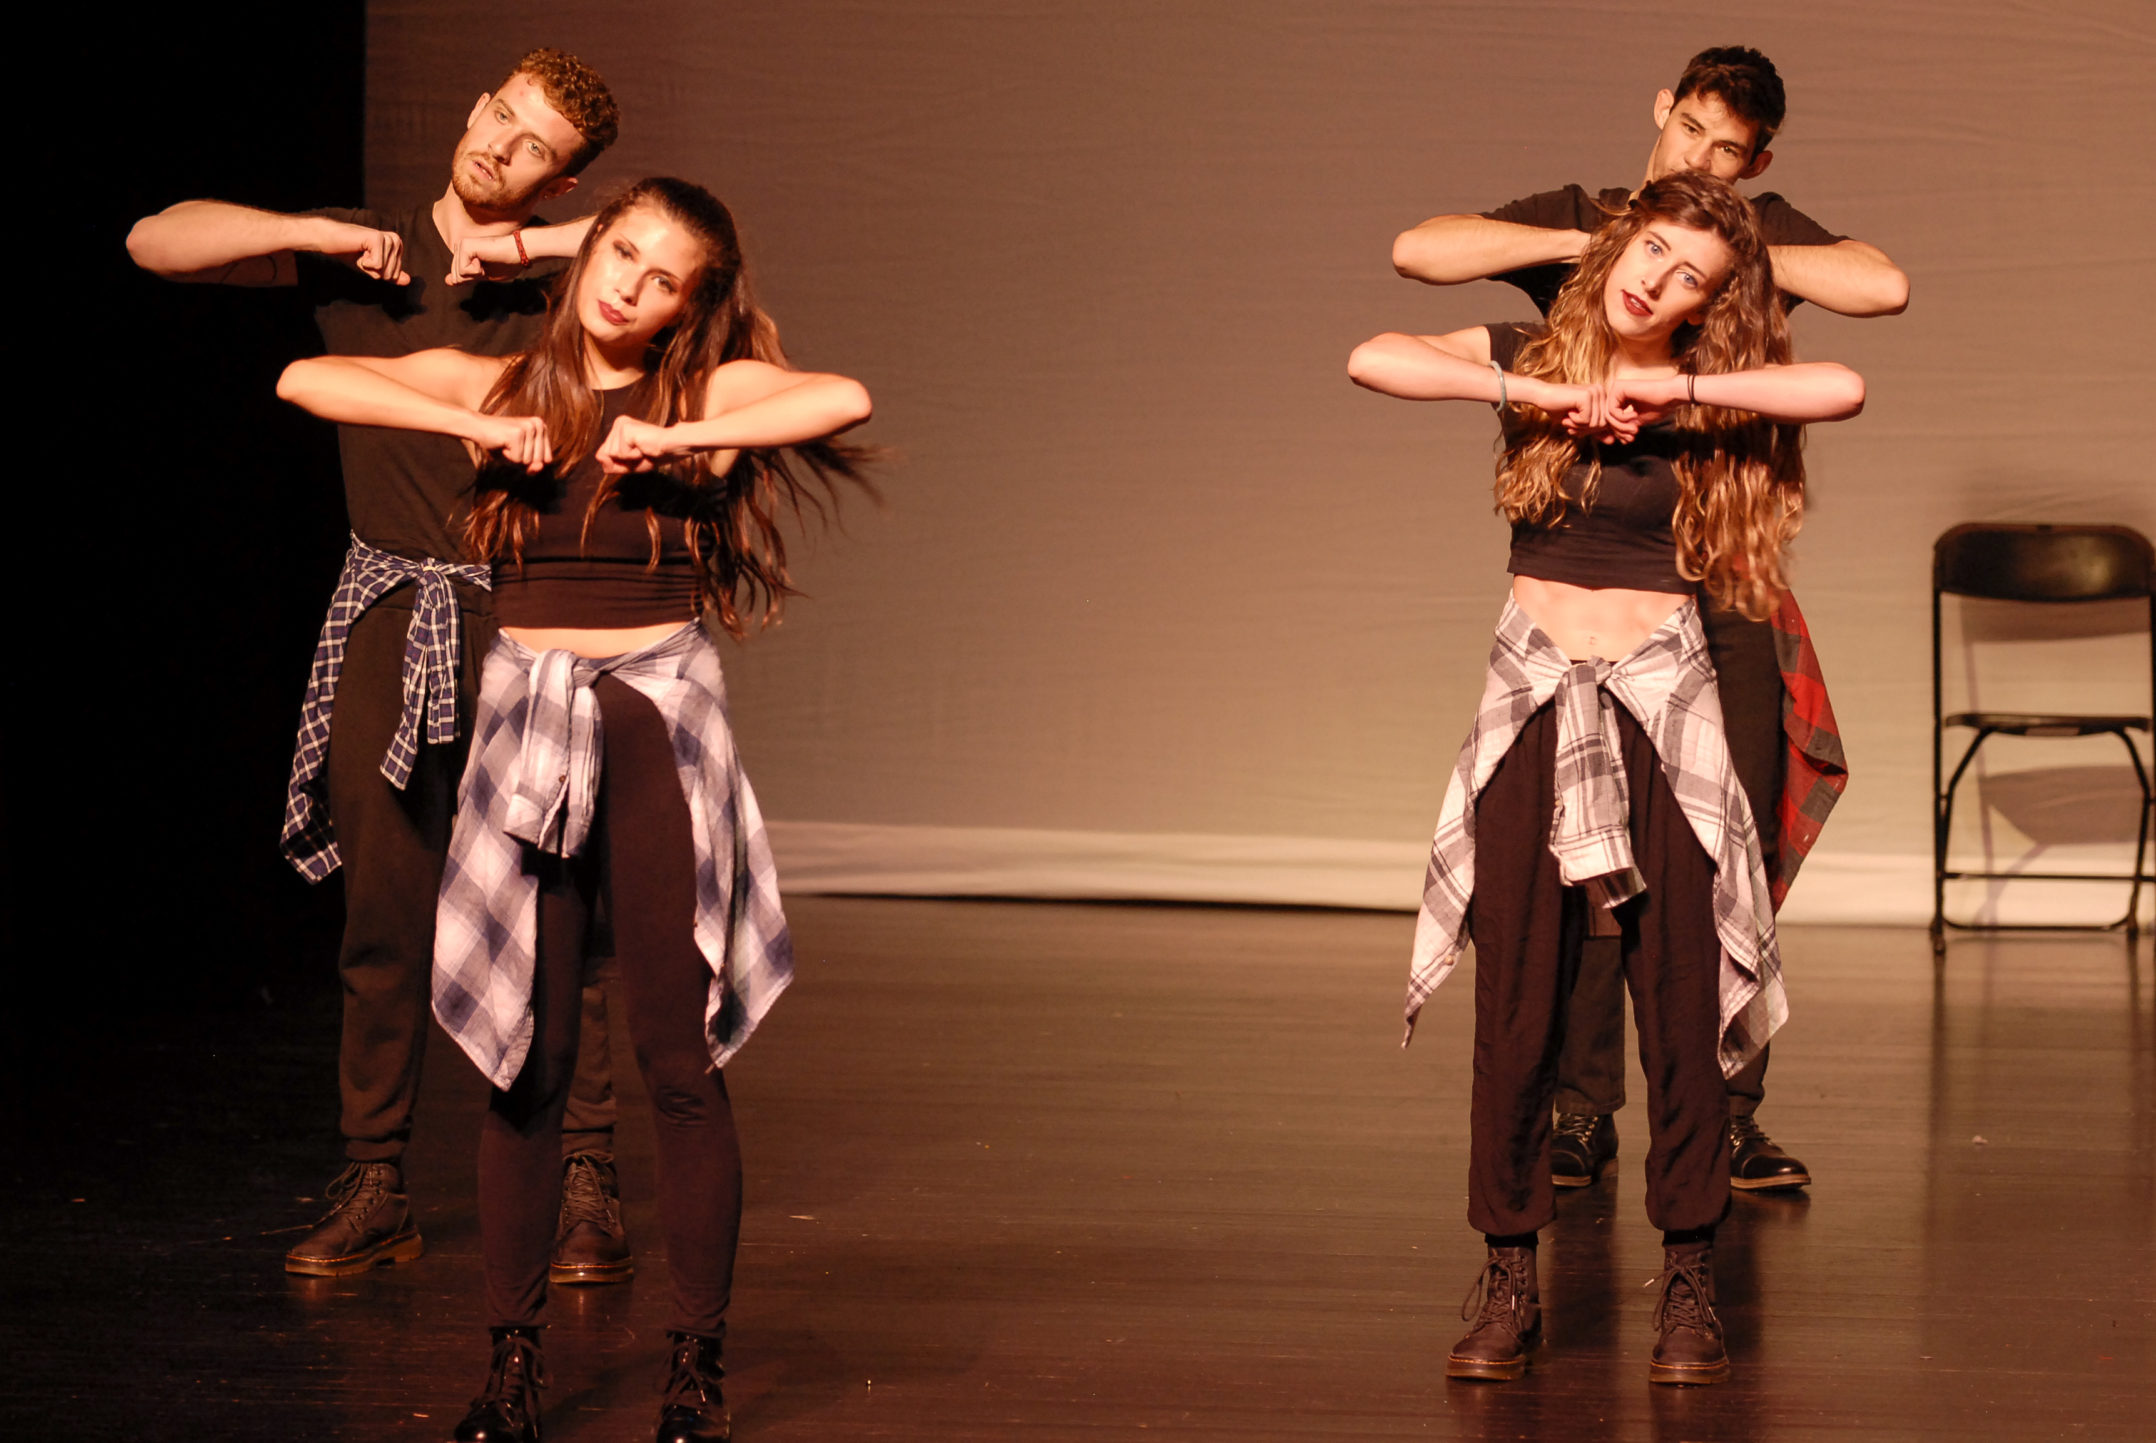 LU's Finest Step Team performs at FUSION on Thursday, Nov. 9, 2017, in Zoellner Arts Center. The Global Union helped fund FUSION as part of International Week. (Roshan Giyanani/B&W Staff)